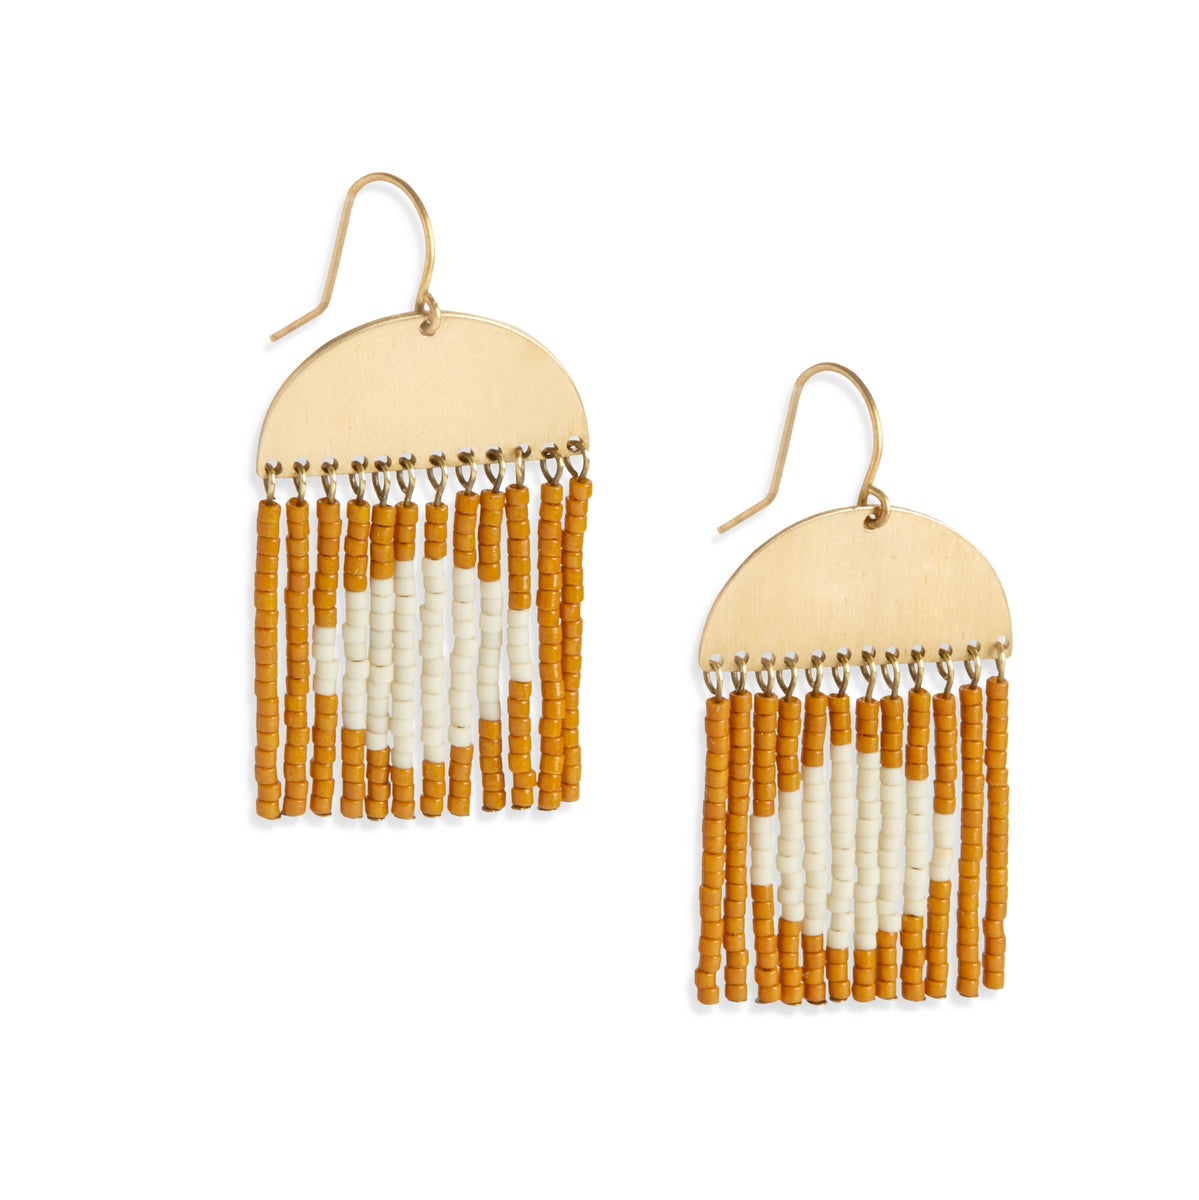 Hamba Earrings